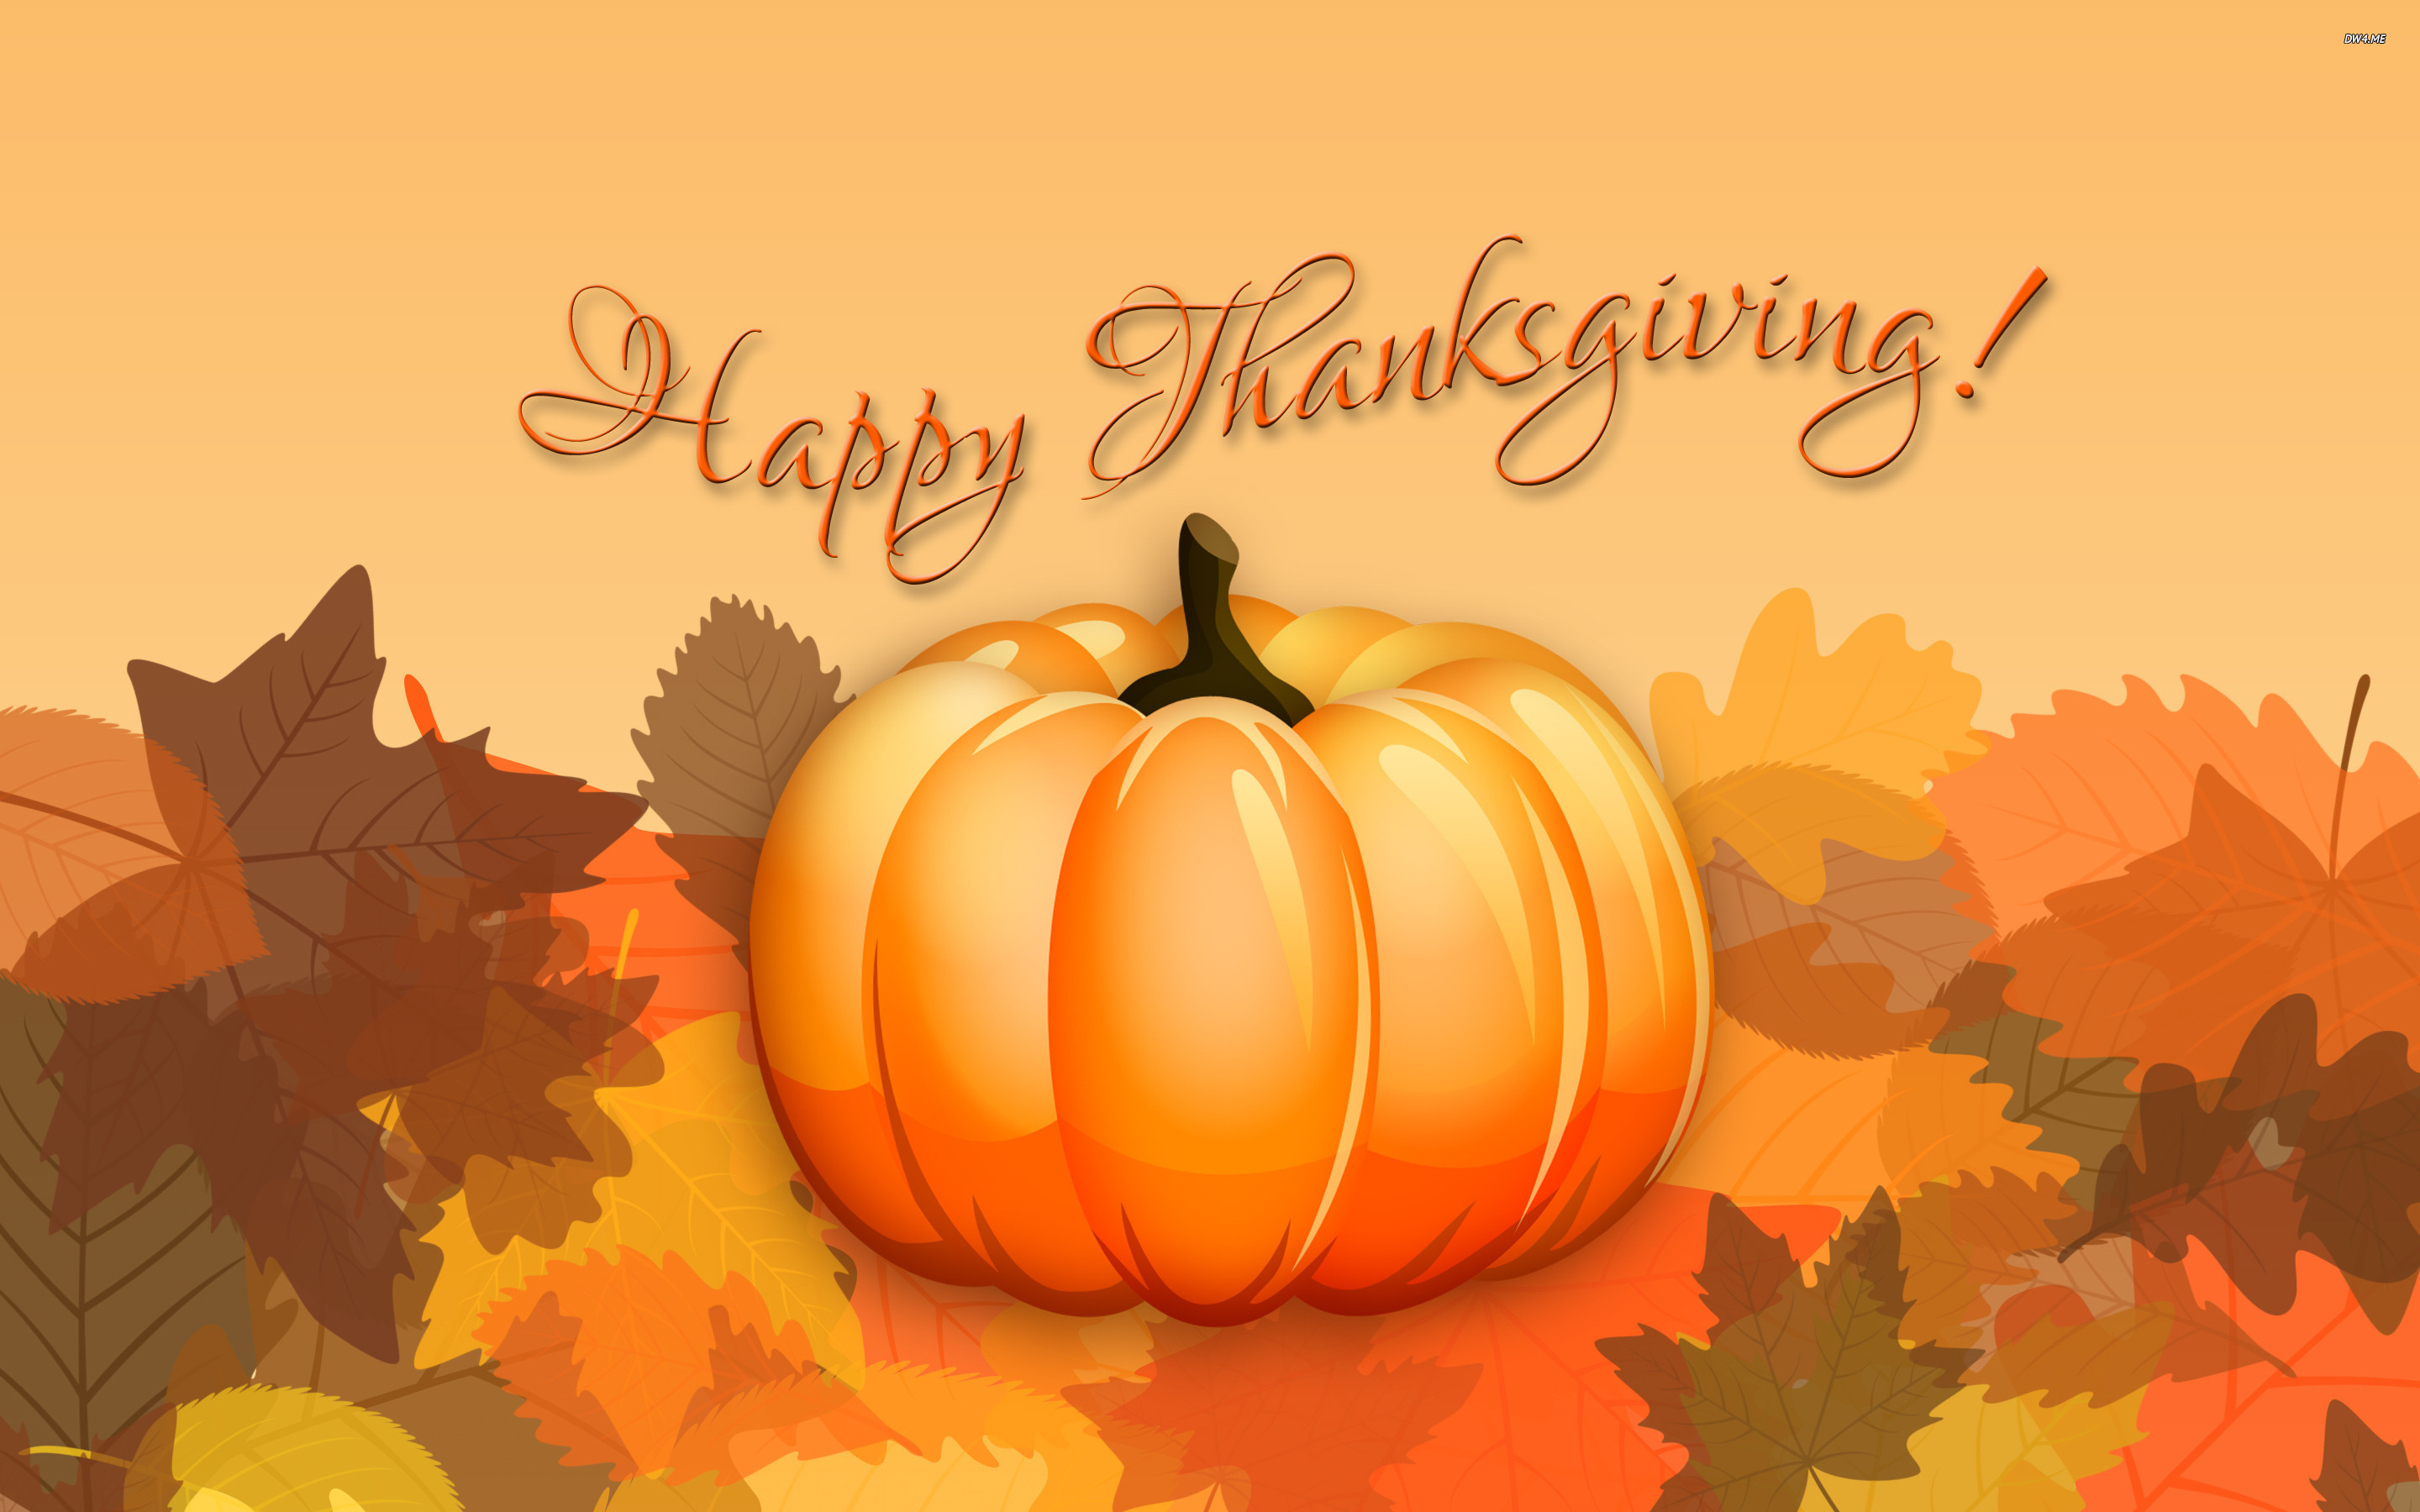 Download the Best Thanksgiving Wallpapers 2015 for Mobile Mac and PC 2880x1800